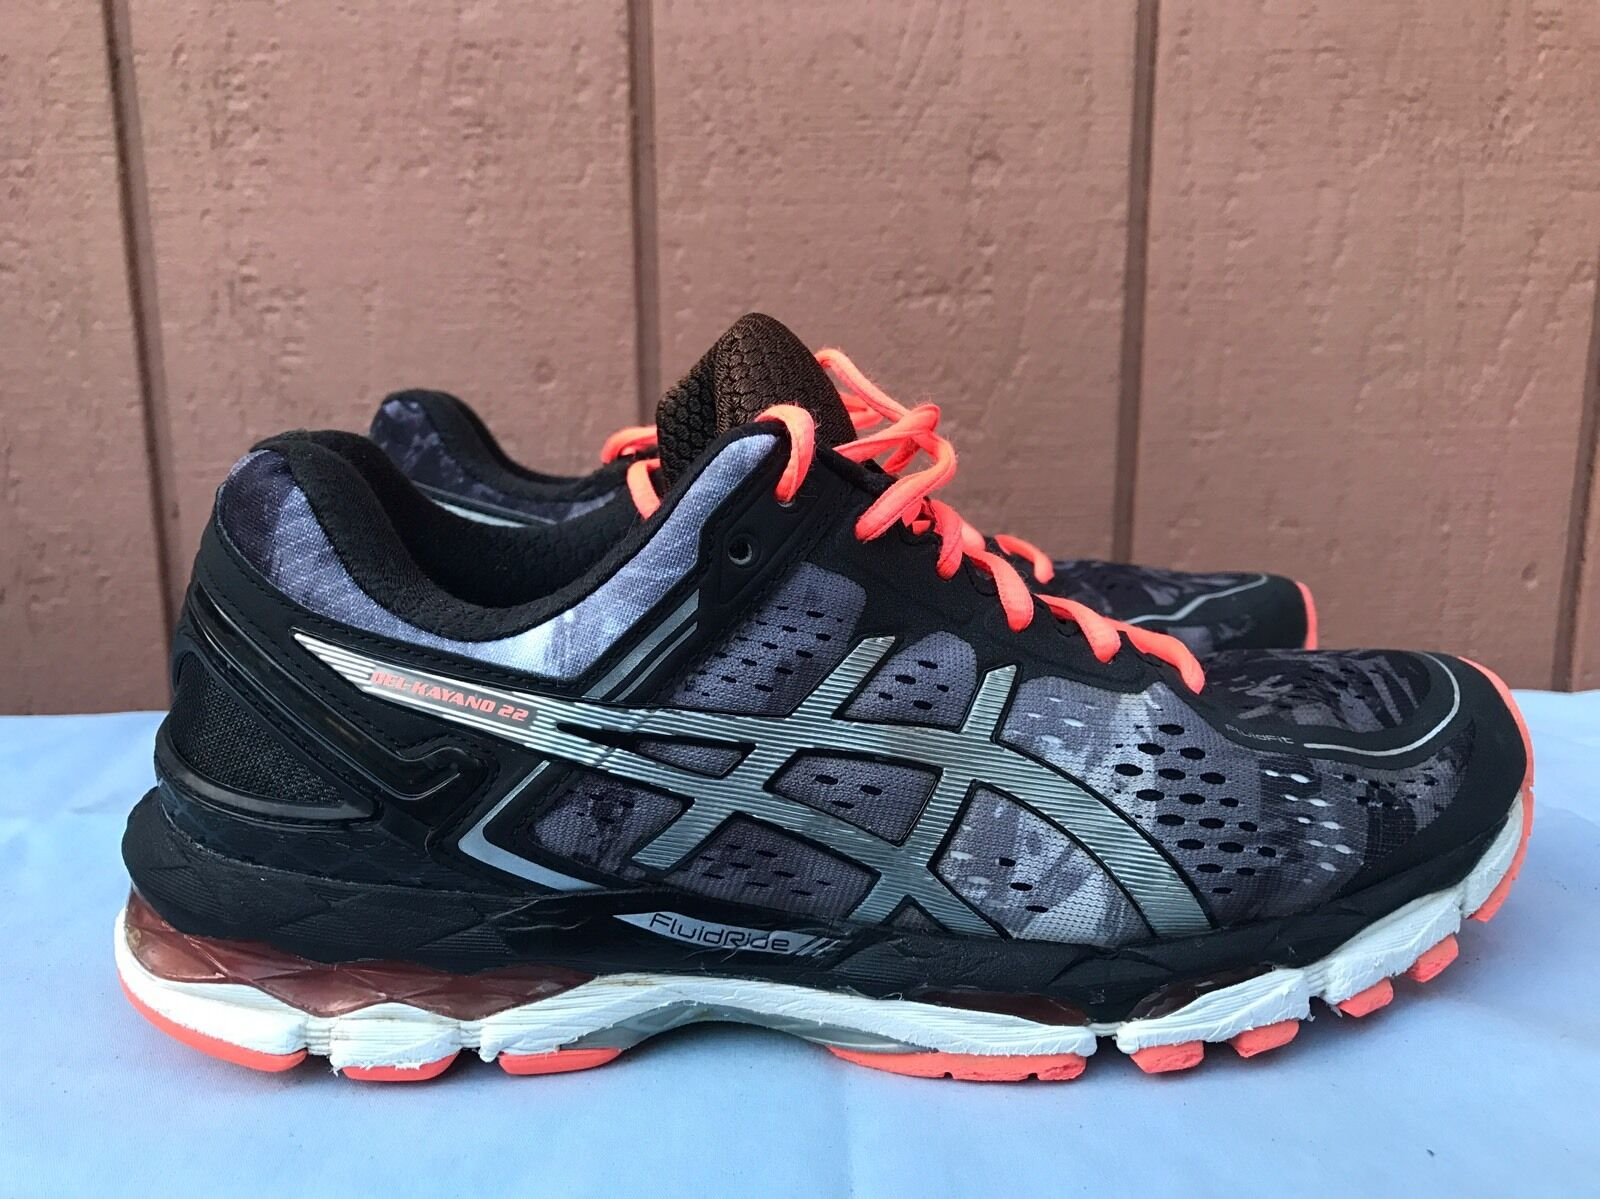 EUC Asics T597N Gel-Kayano 22 Supportive Running Black/Coral Women US 9  Casual wild